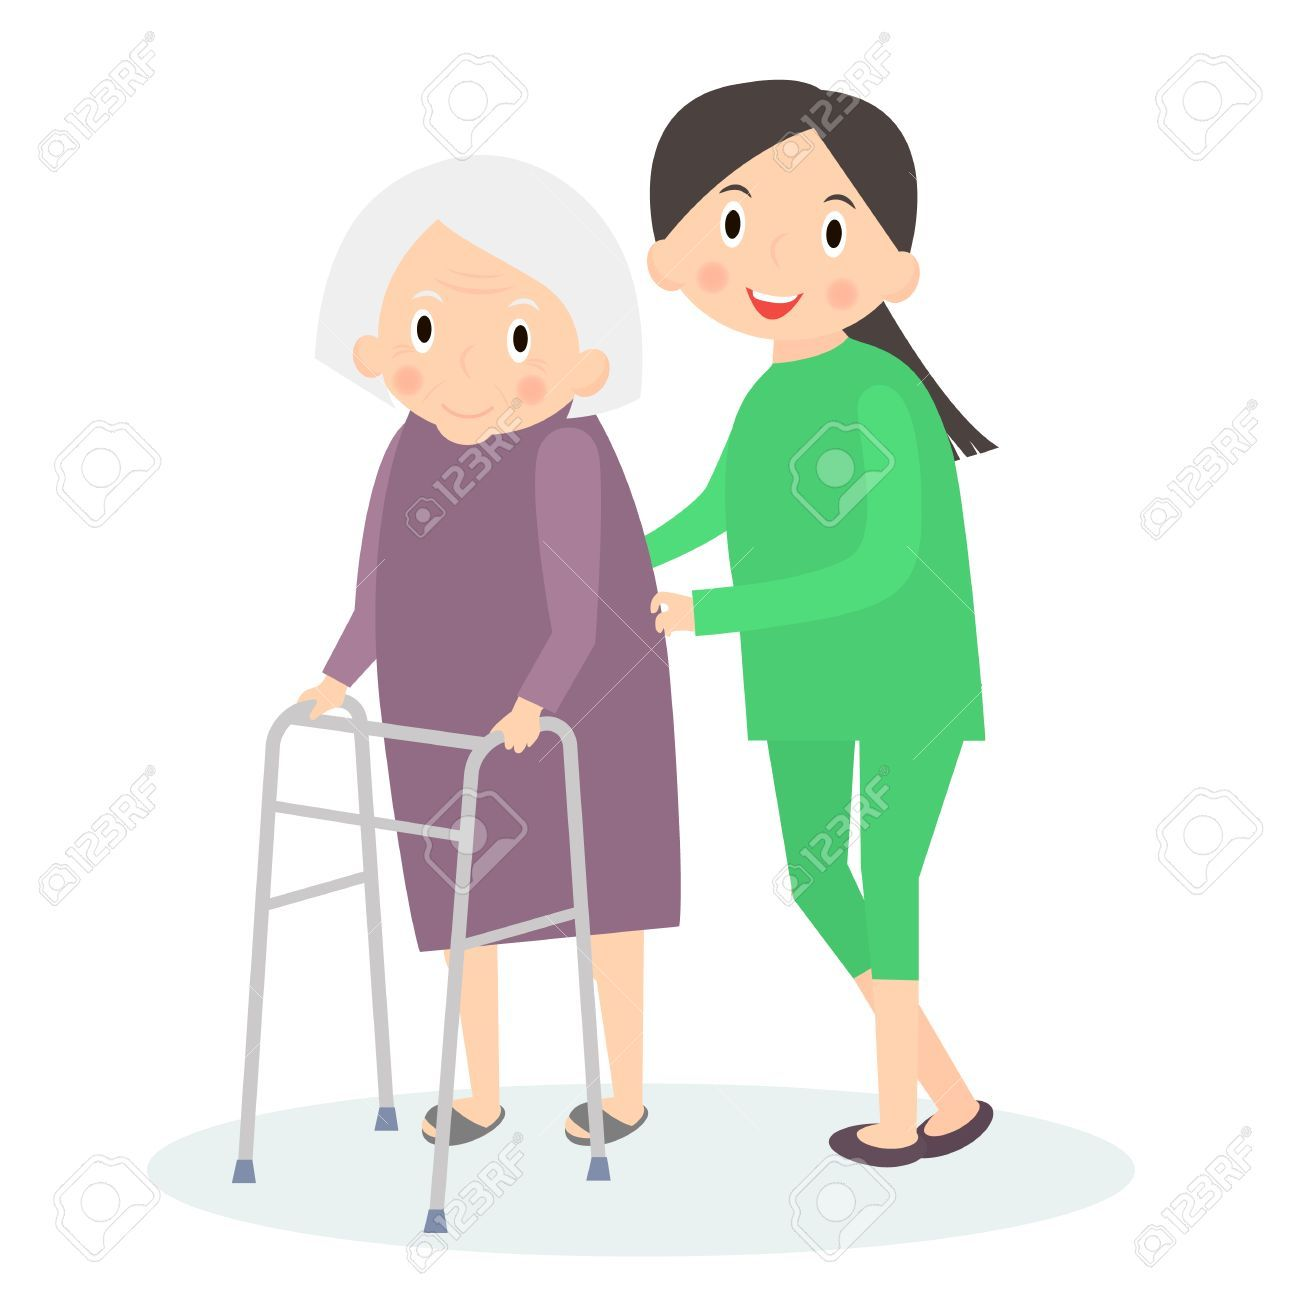 Caring for seniors, helping moving around. Elderly care. Vector.